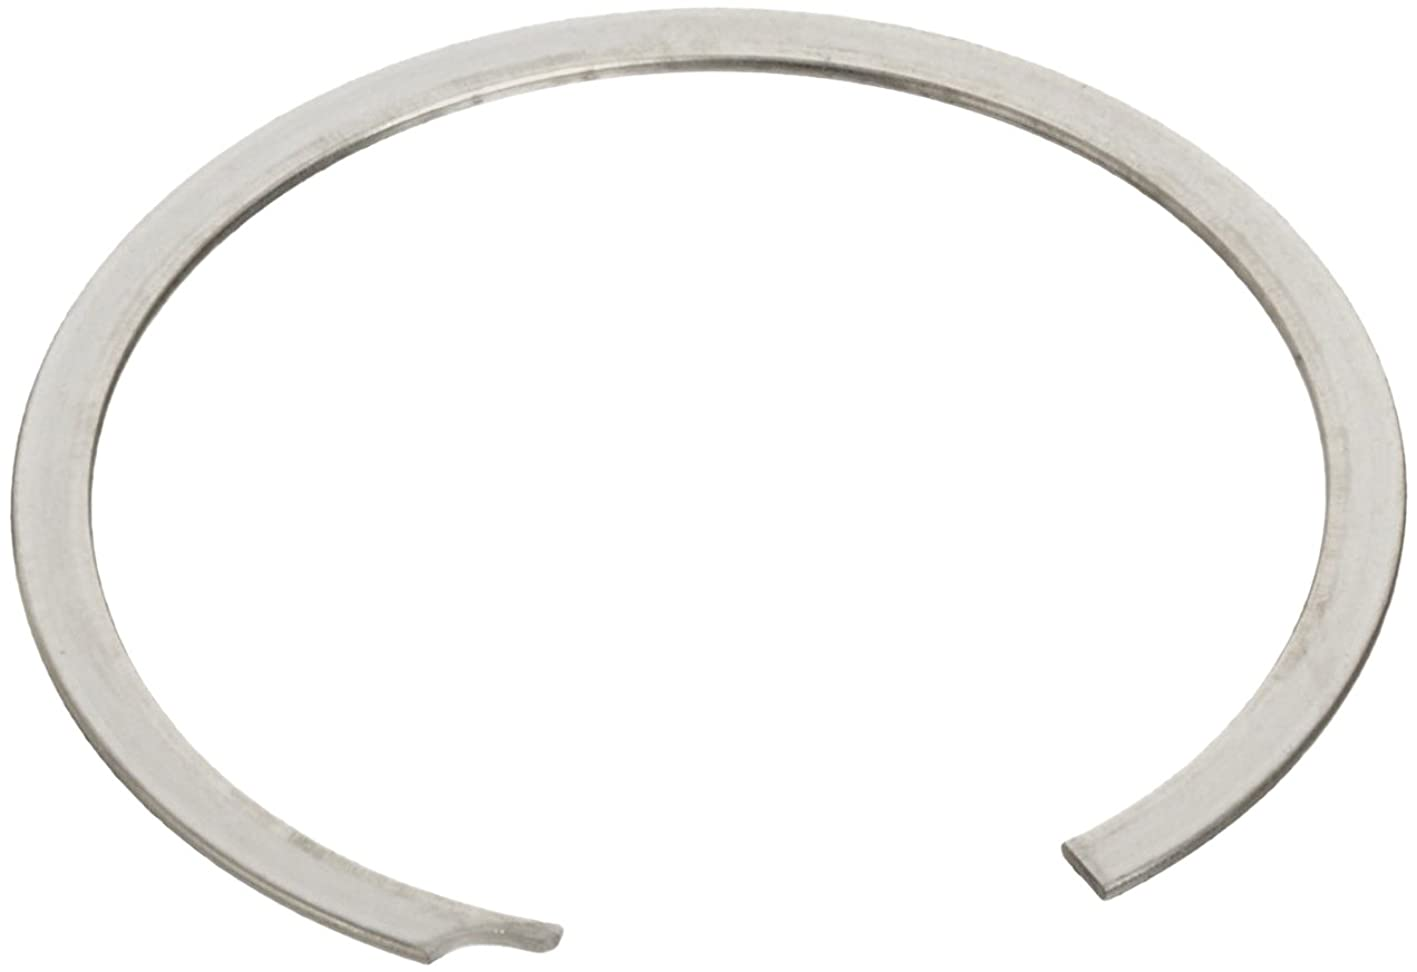 Standard External Retaining Ring, Spiral, Axial Assembly, 1070-1090 Carbon Steel, Plain Finish, 2-1/2